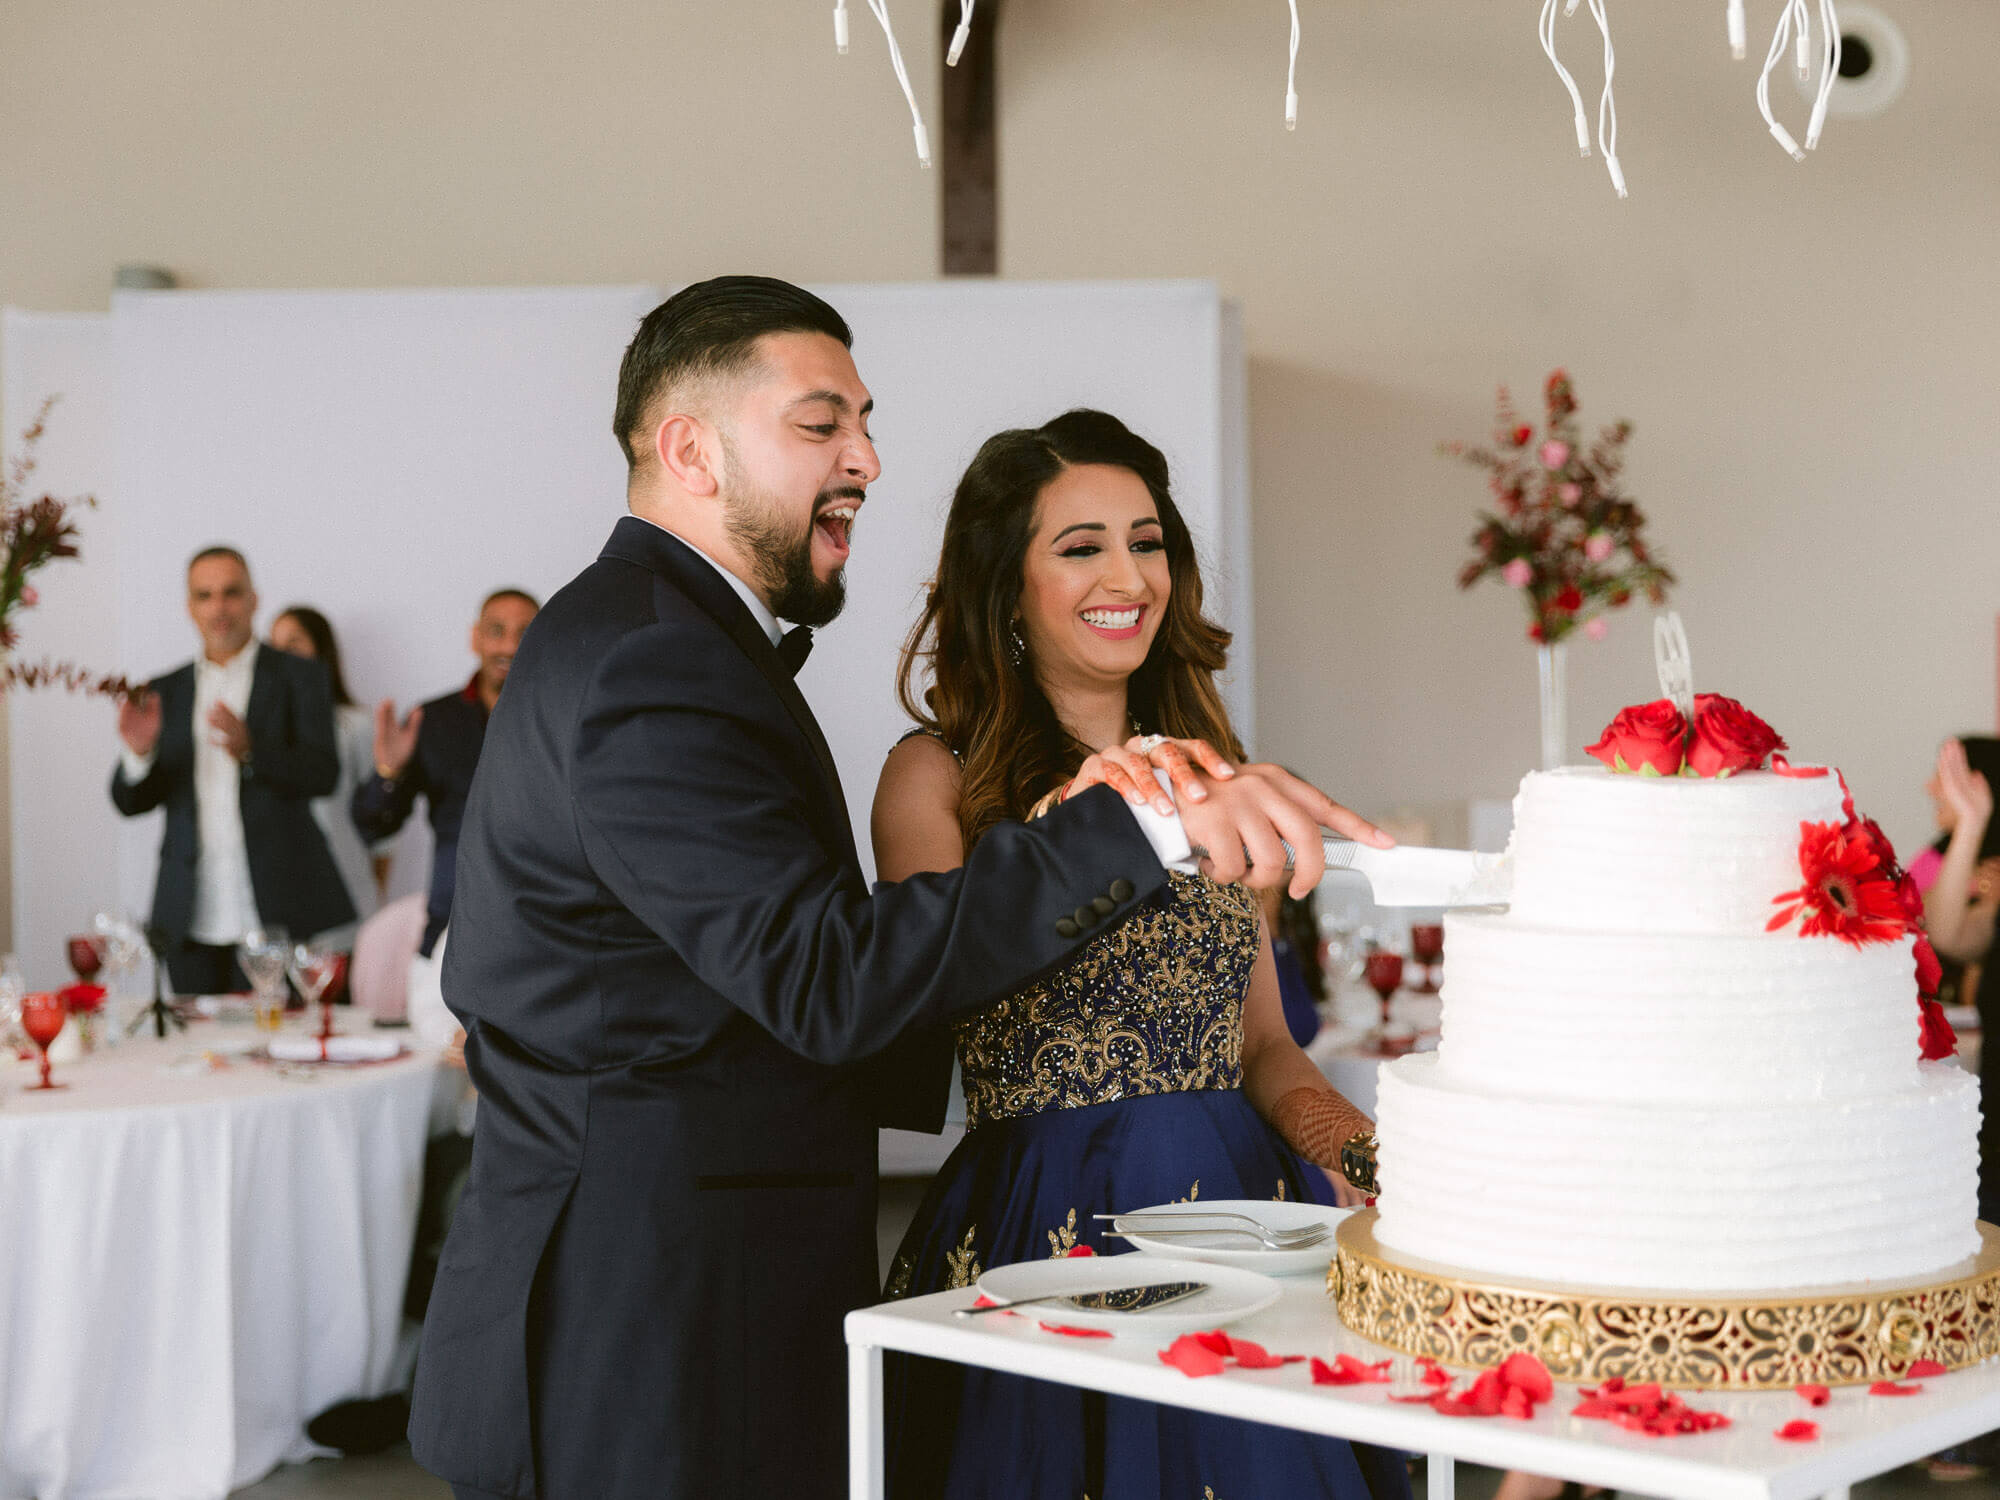 Hindu couple happily cutting wedding cake by Portugal Wedding Photographer